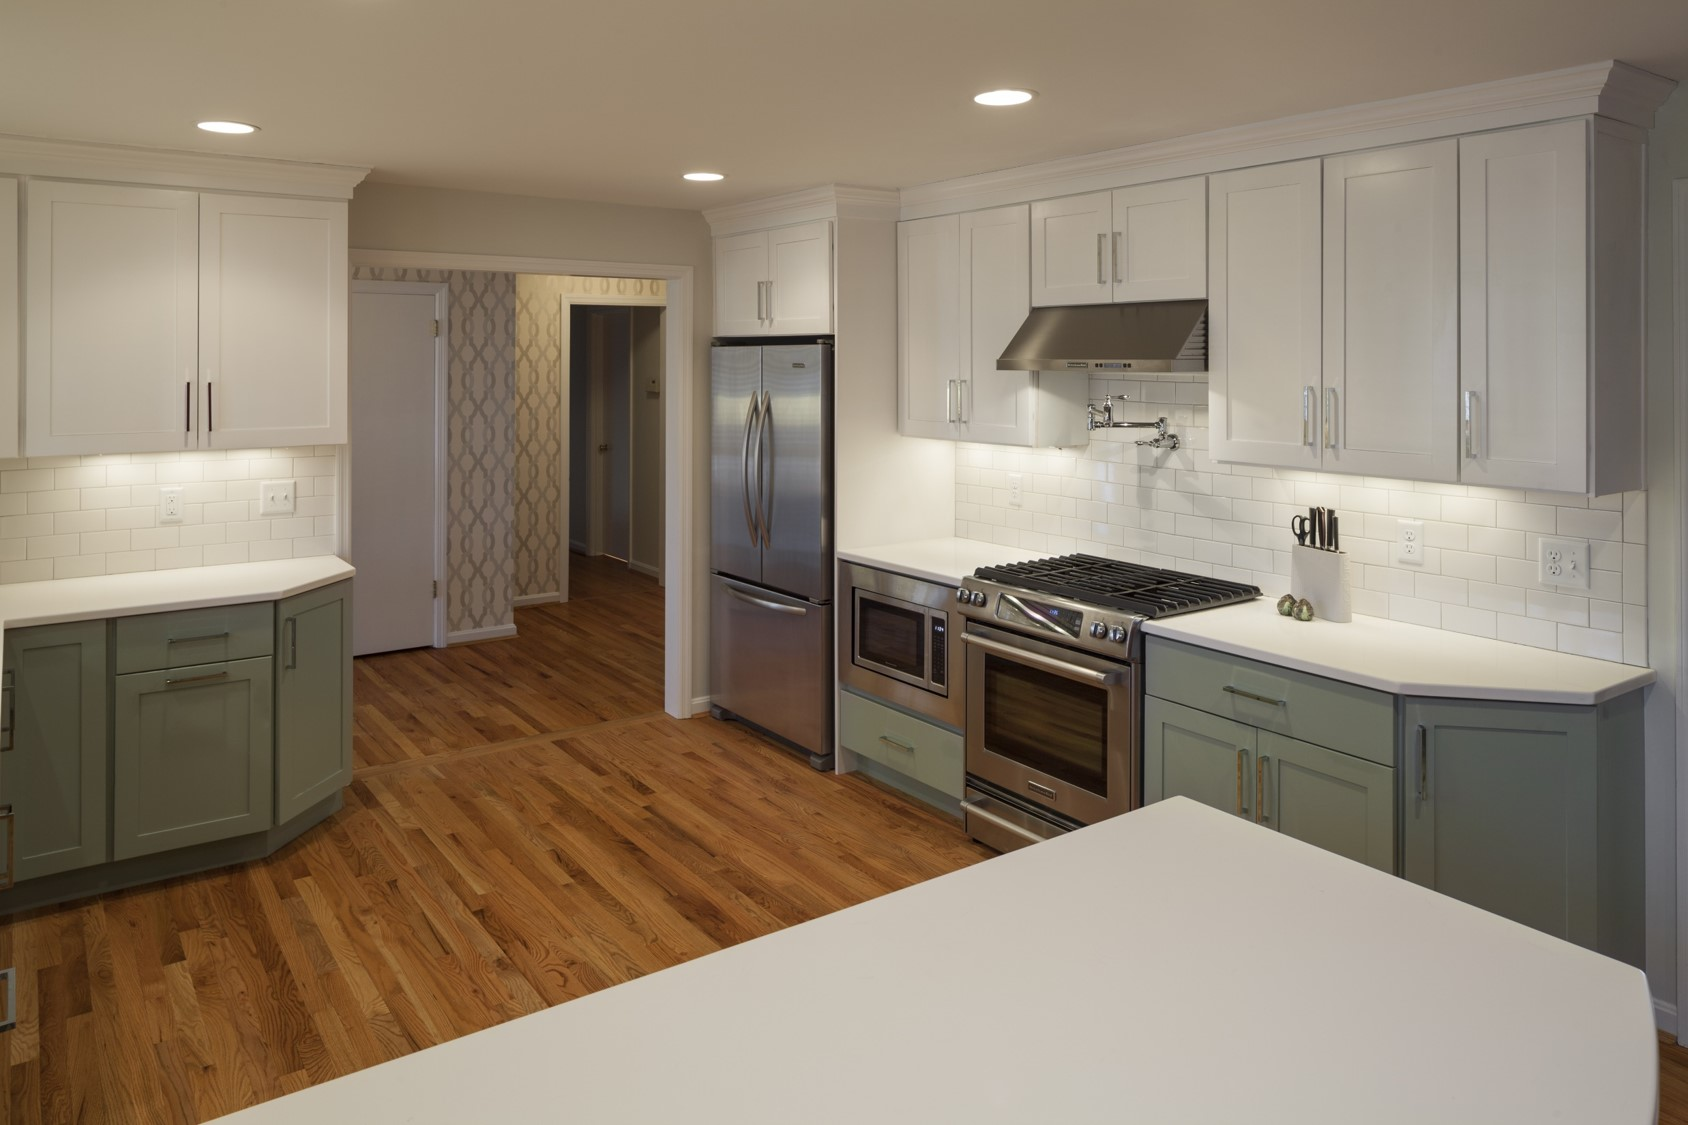 If you've ever wondered what a complete kitchen renovation on a not-to-big budget looks like - this is it. Fear not - you can dream big without breaking the bank.